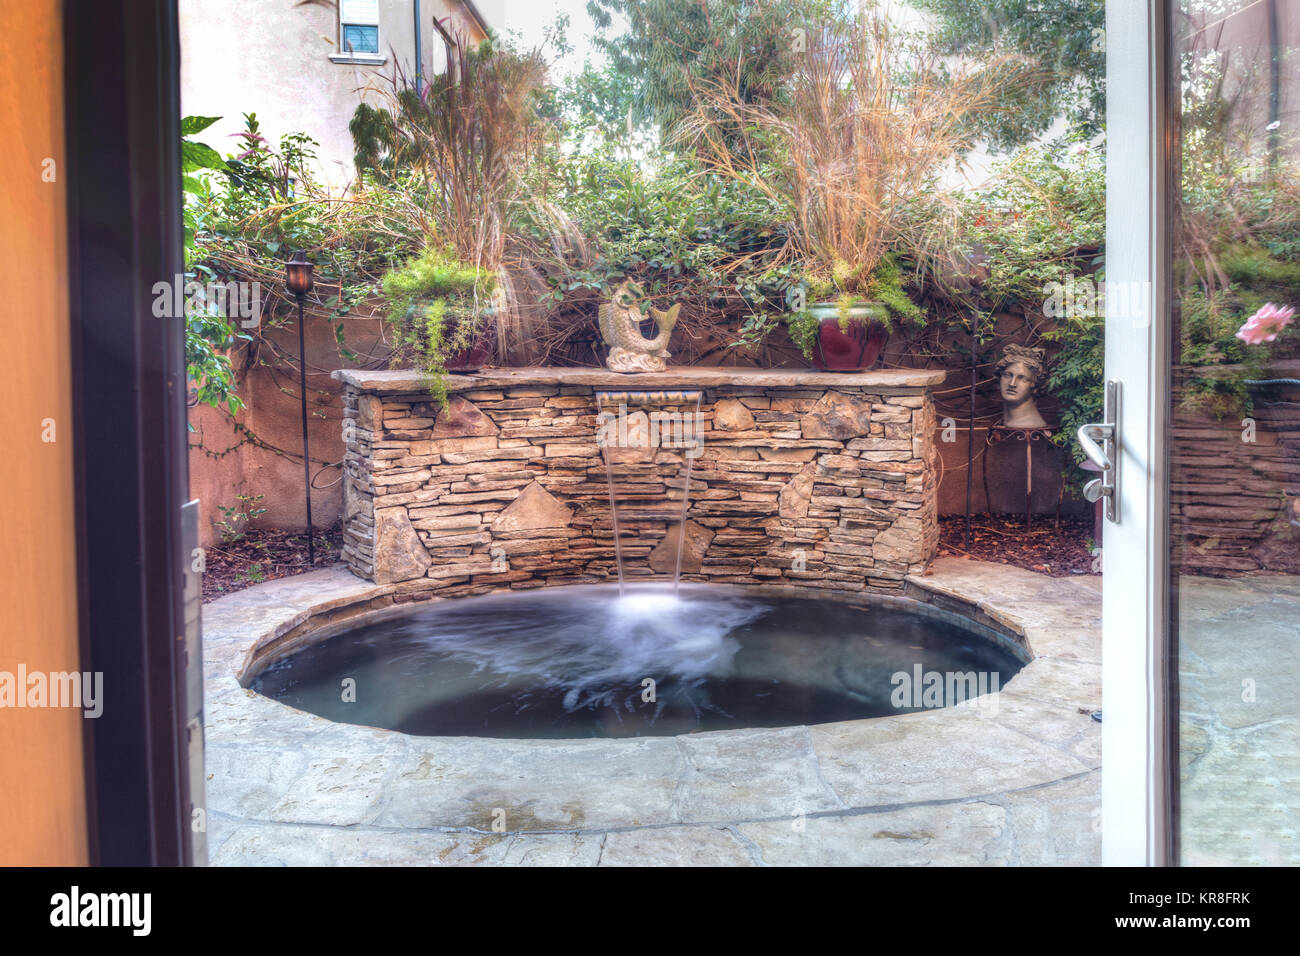 Oval hot tub spa with waterfall Stock Photo: 169218439 - Alamy